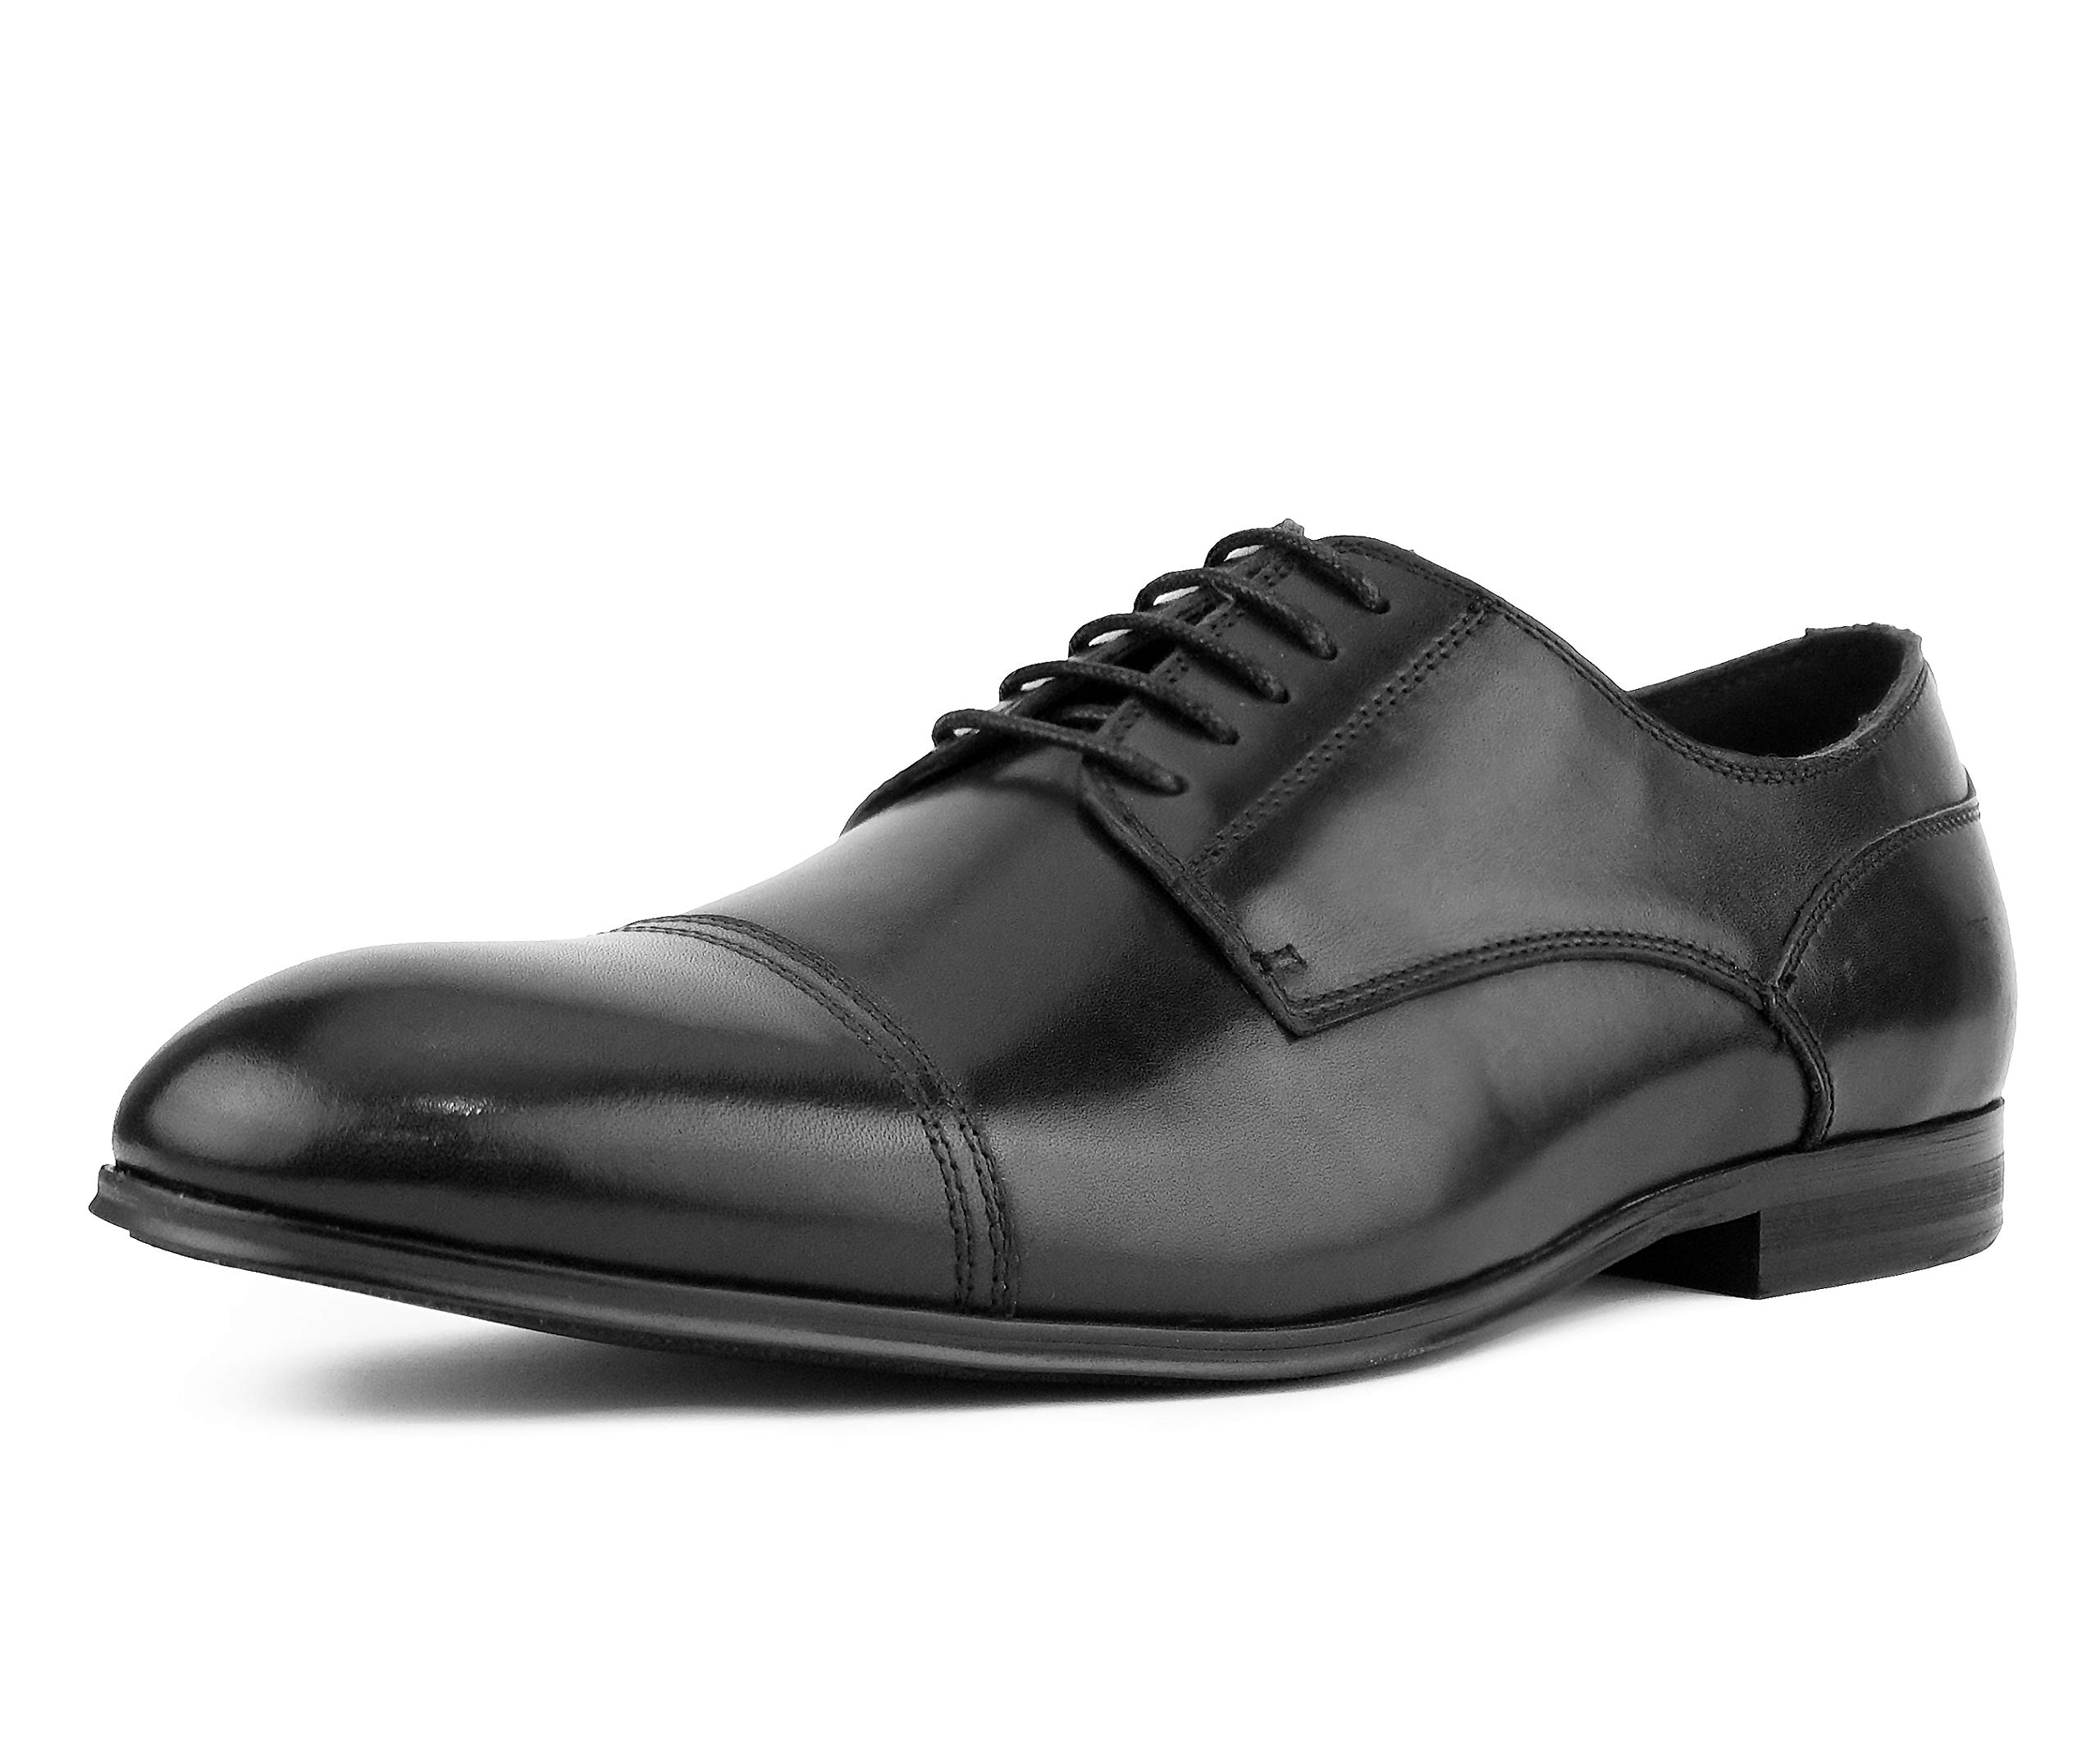 Asher Green AG1618 - Men's Oxford Dress Shoes, Genuine Leather Cap Toe Lace Up with Detailed Stitching - Formal Men's Leather Shoes